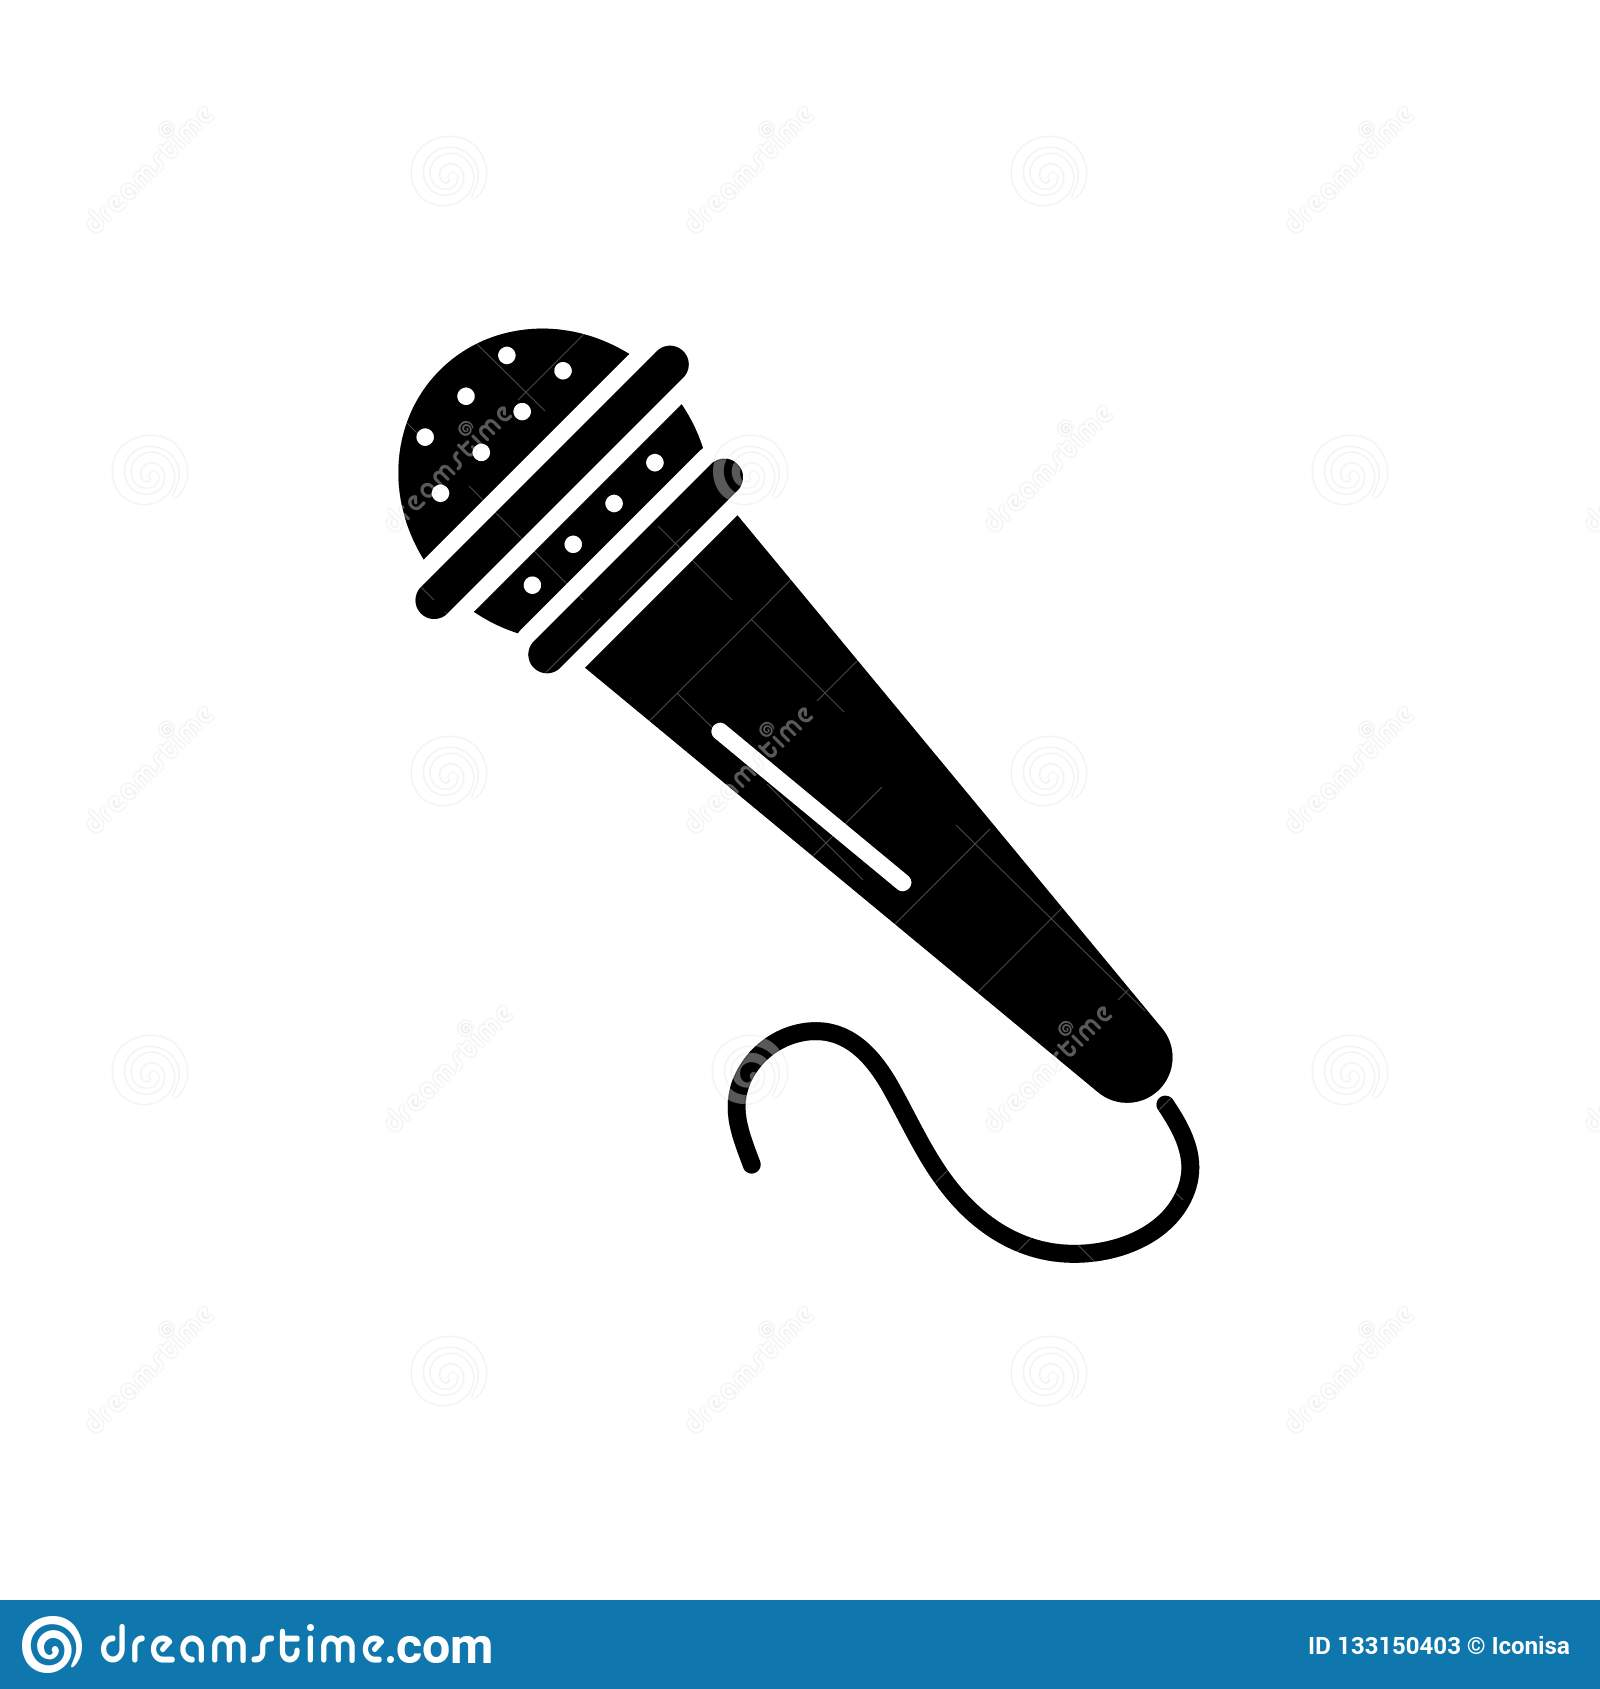 Microphone Black Icon  Vector Sign On Isolated Background  Microphone Concept Symbol